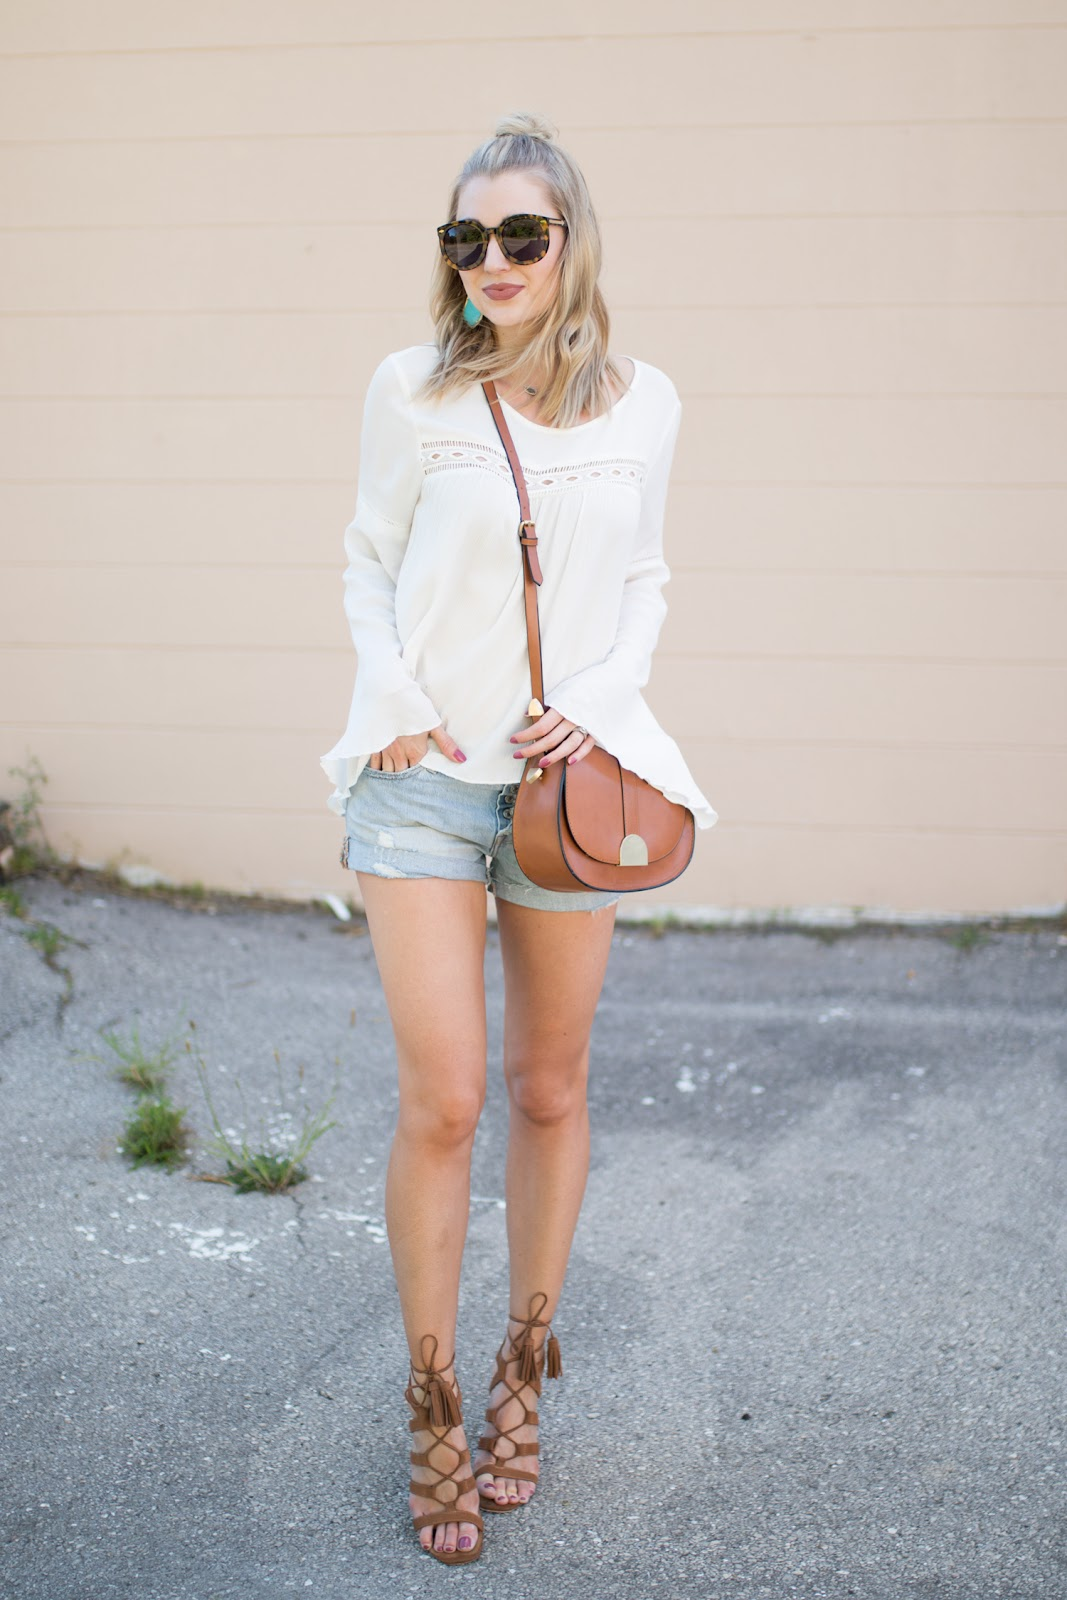 White top + jean shorts